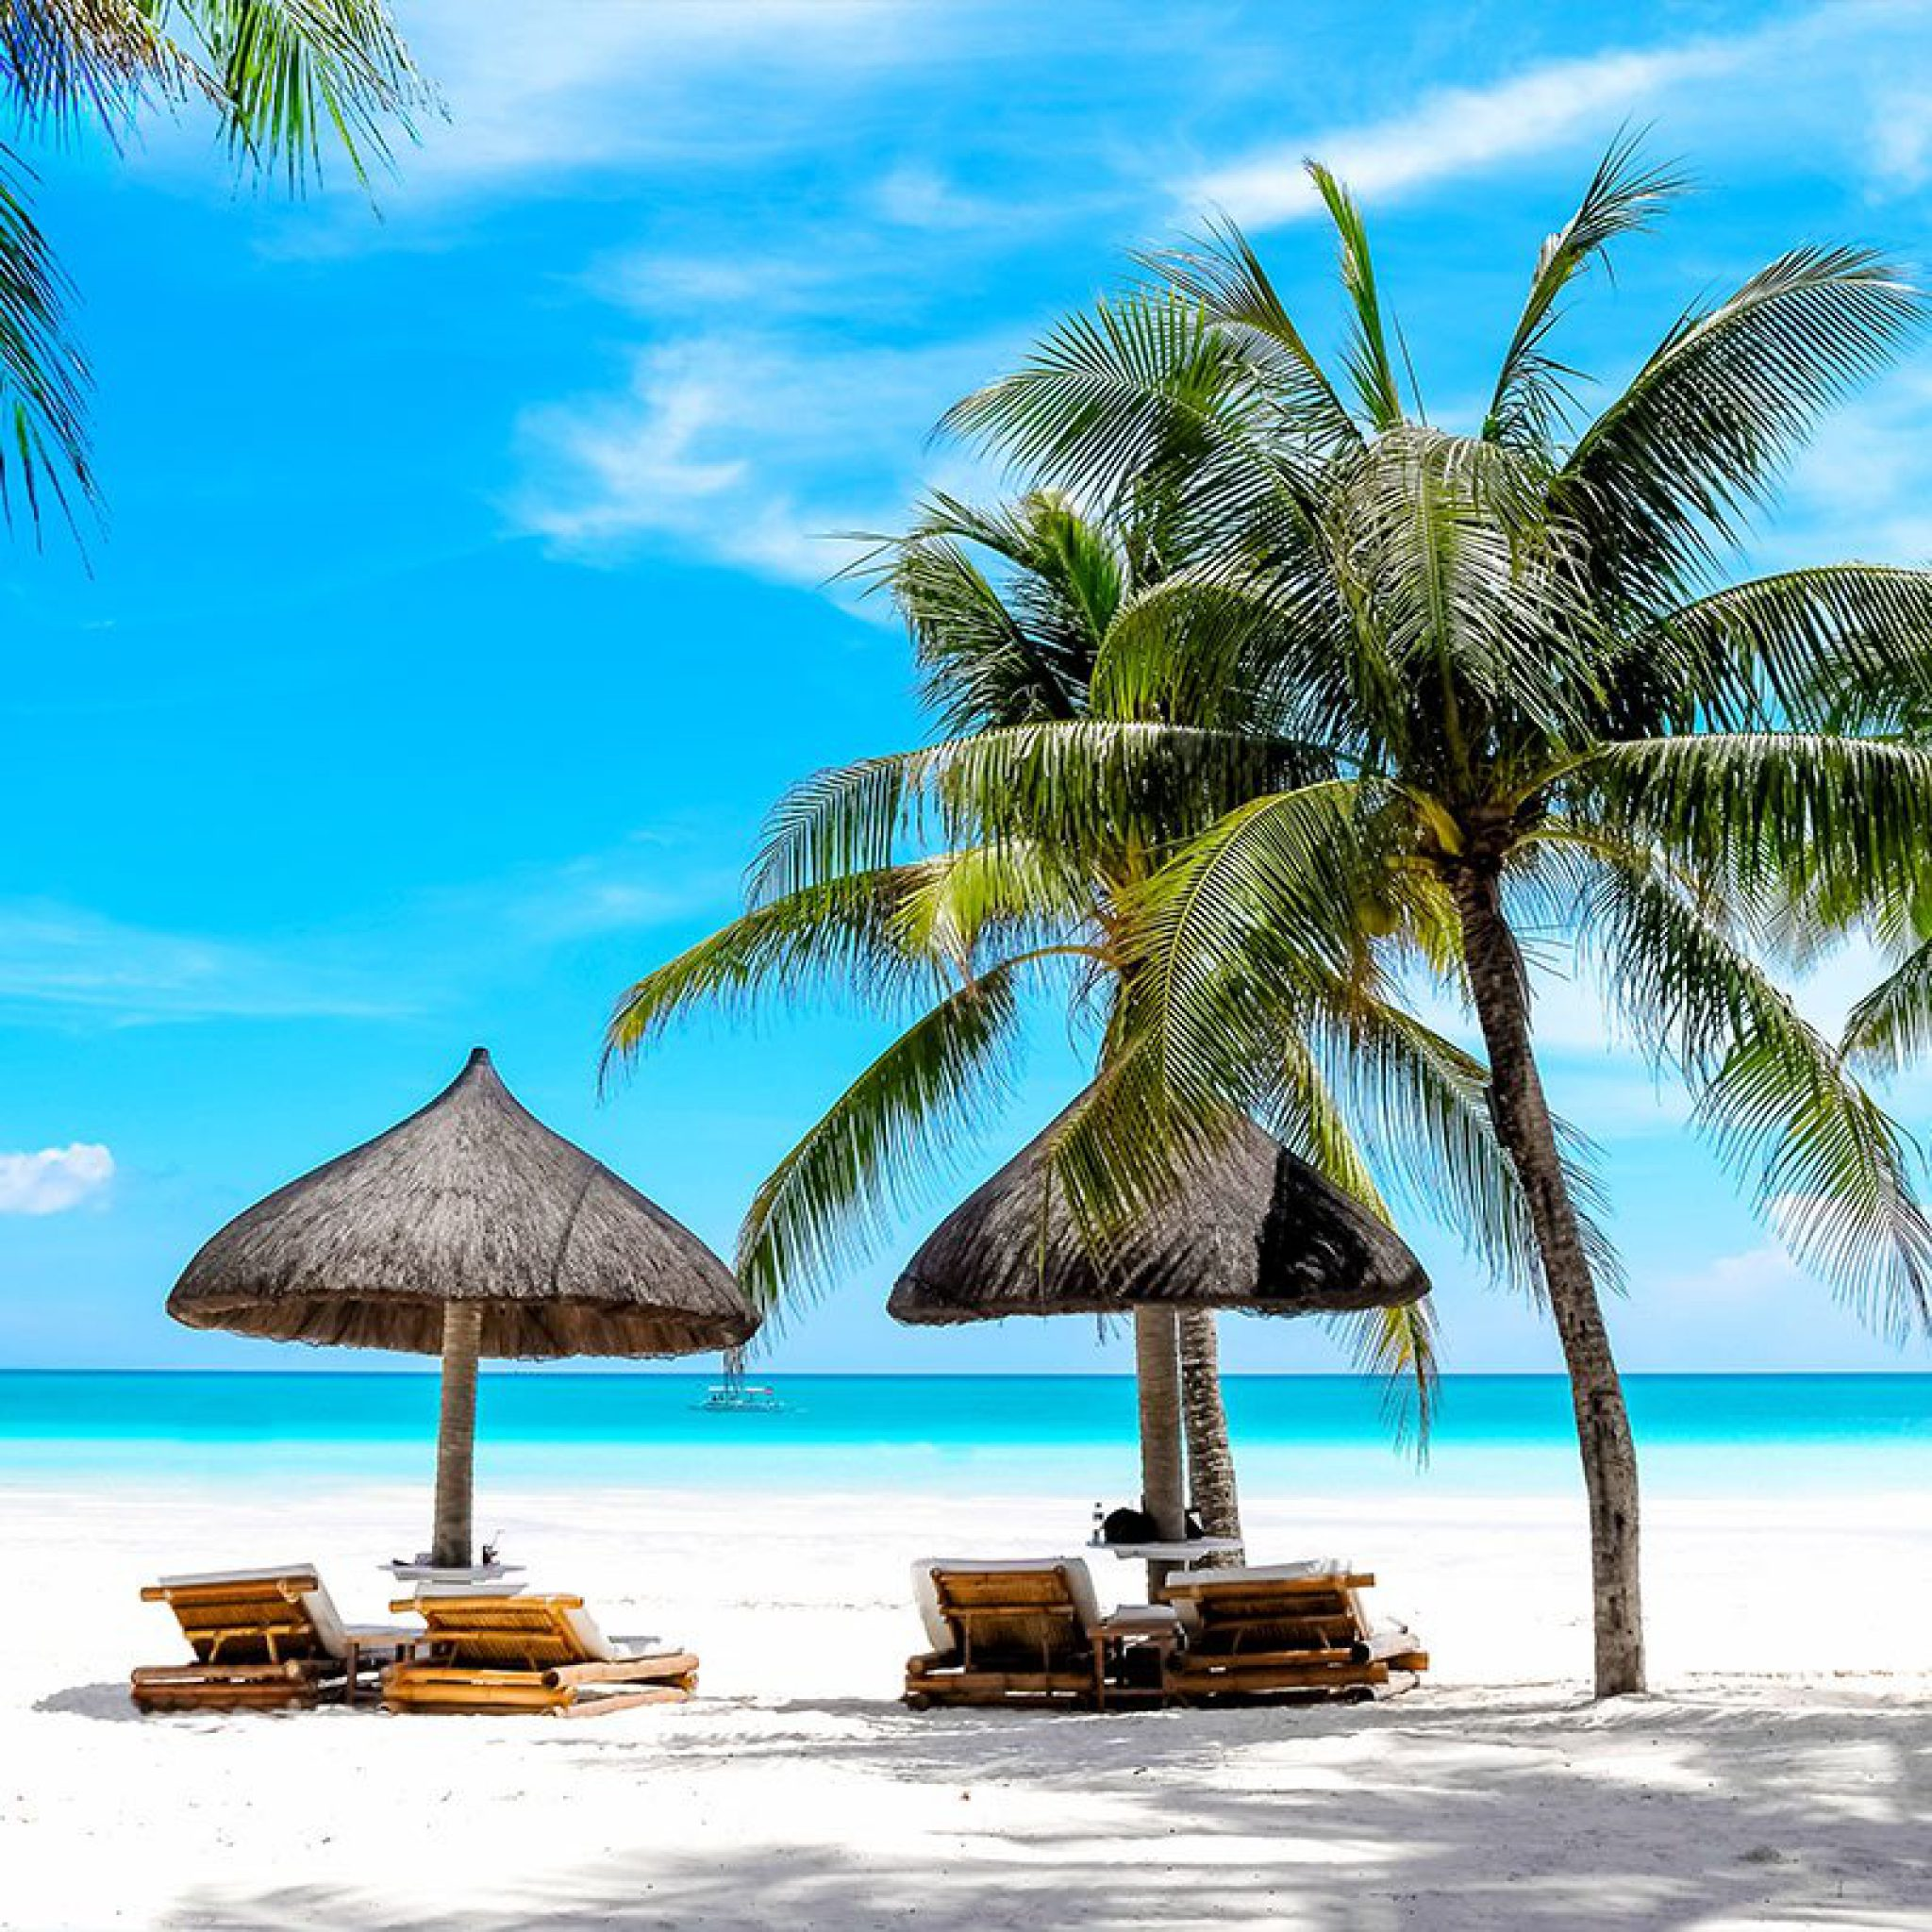 Boracay Beach: Top Instagram-Worthy Destinations In The Philippines